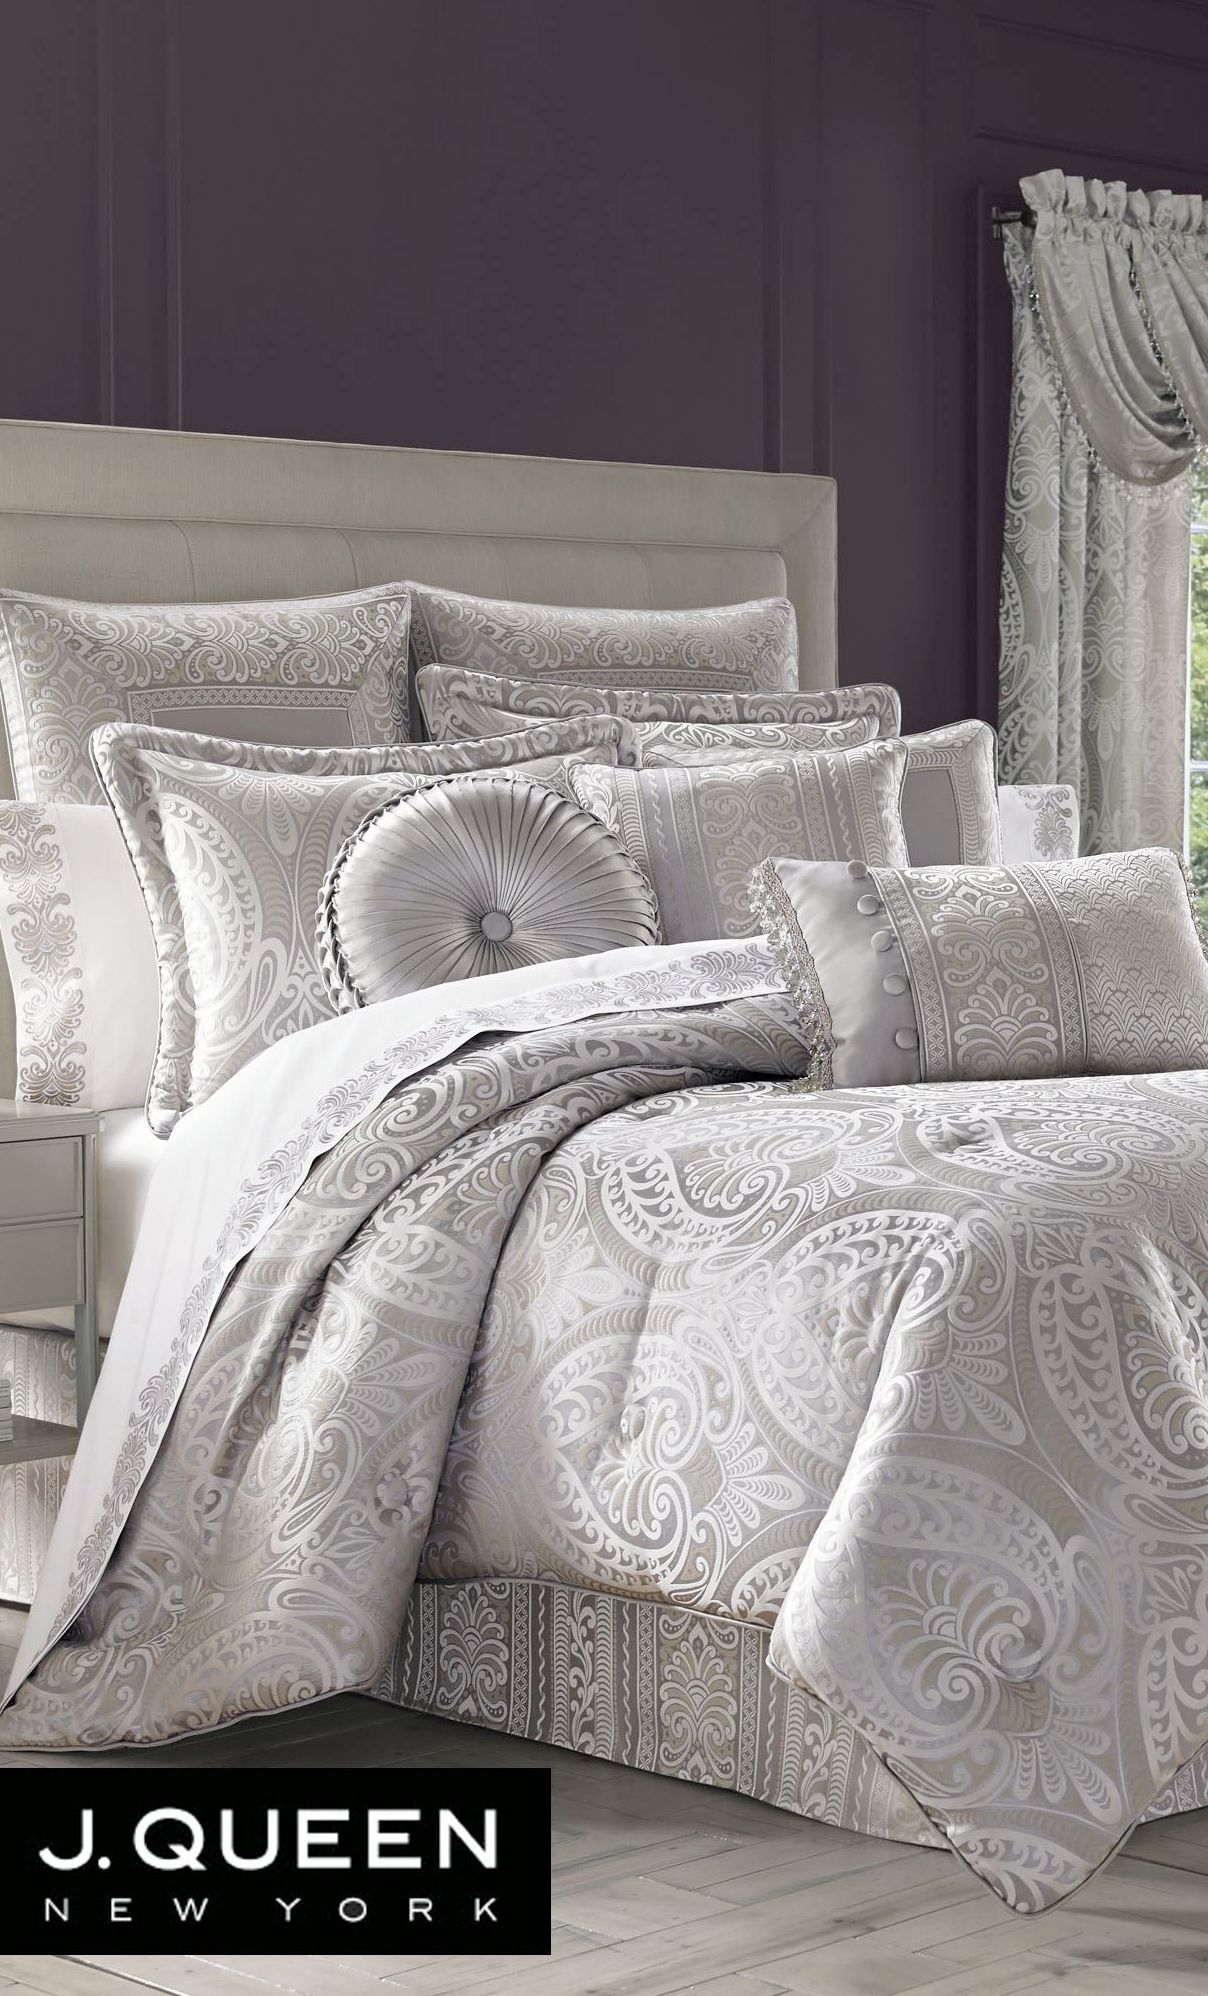 Le Blanc Silver forter Bedding by J Queen New York